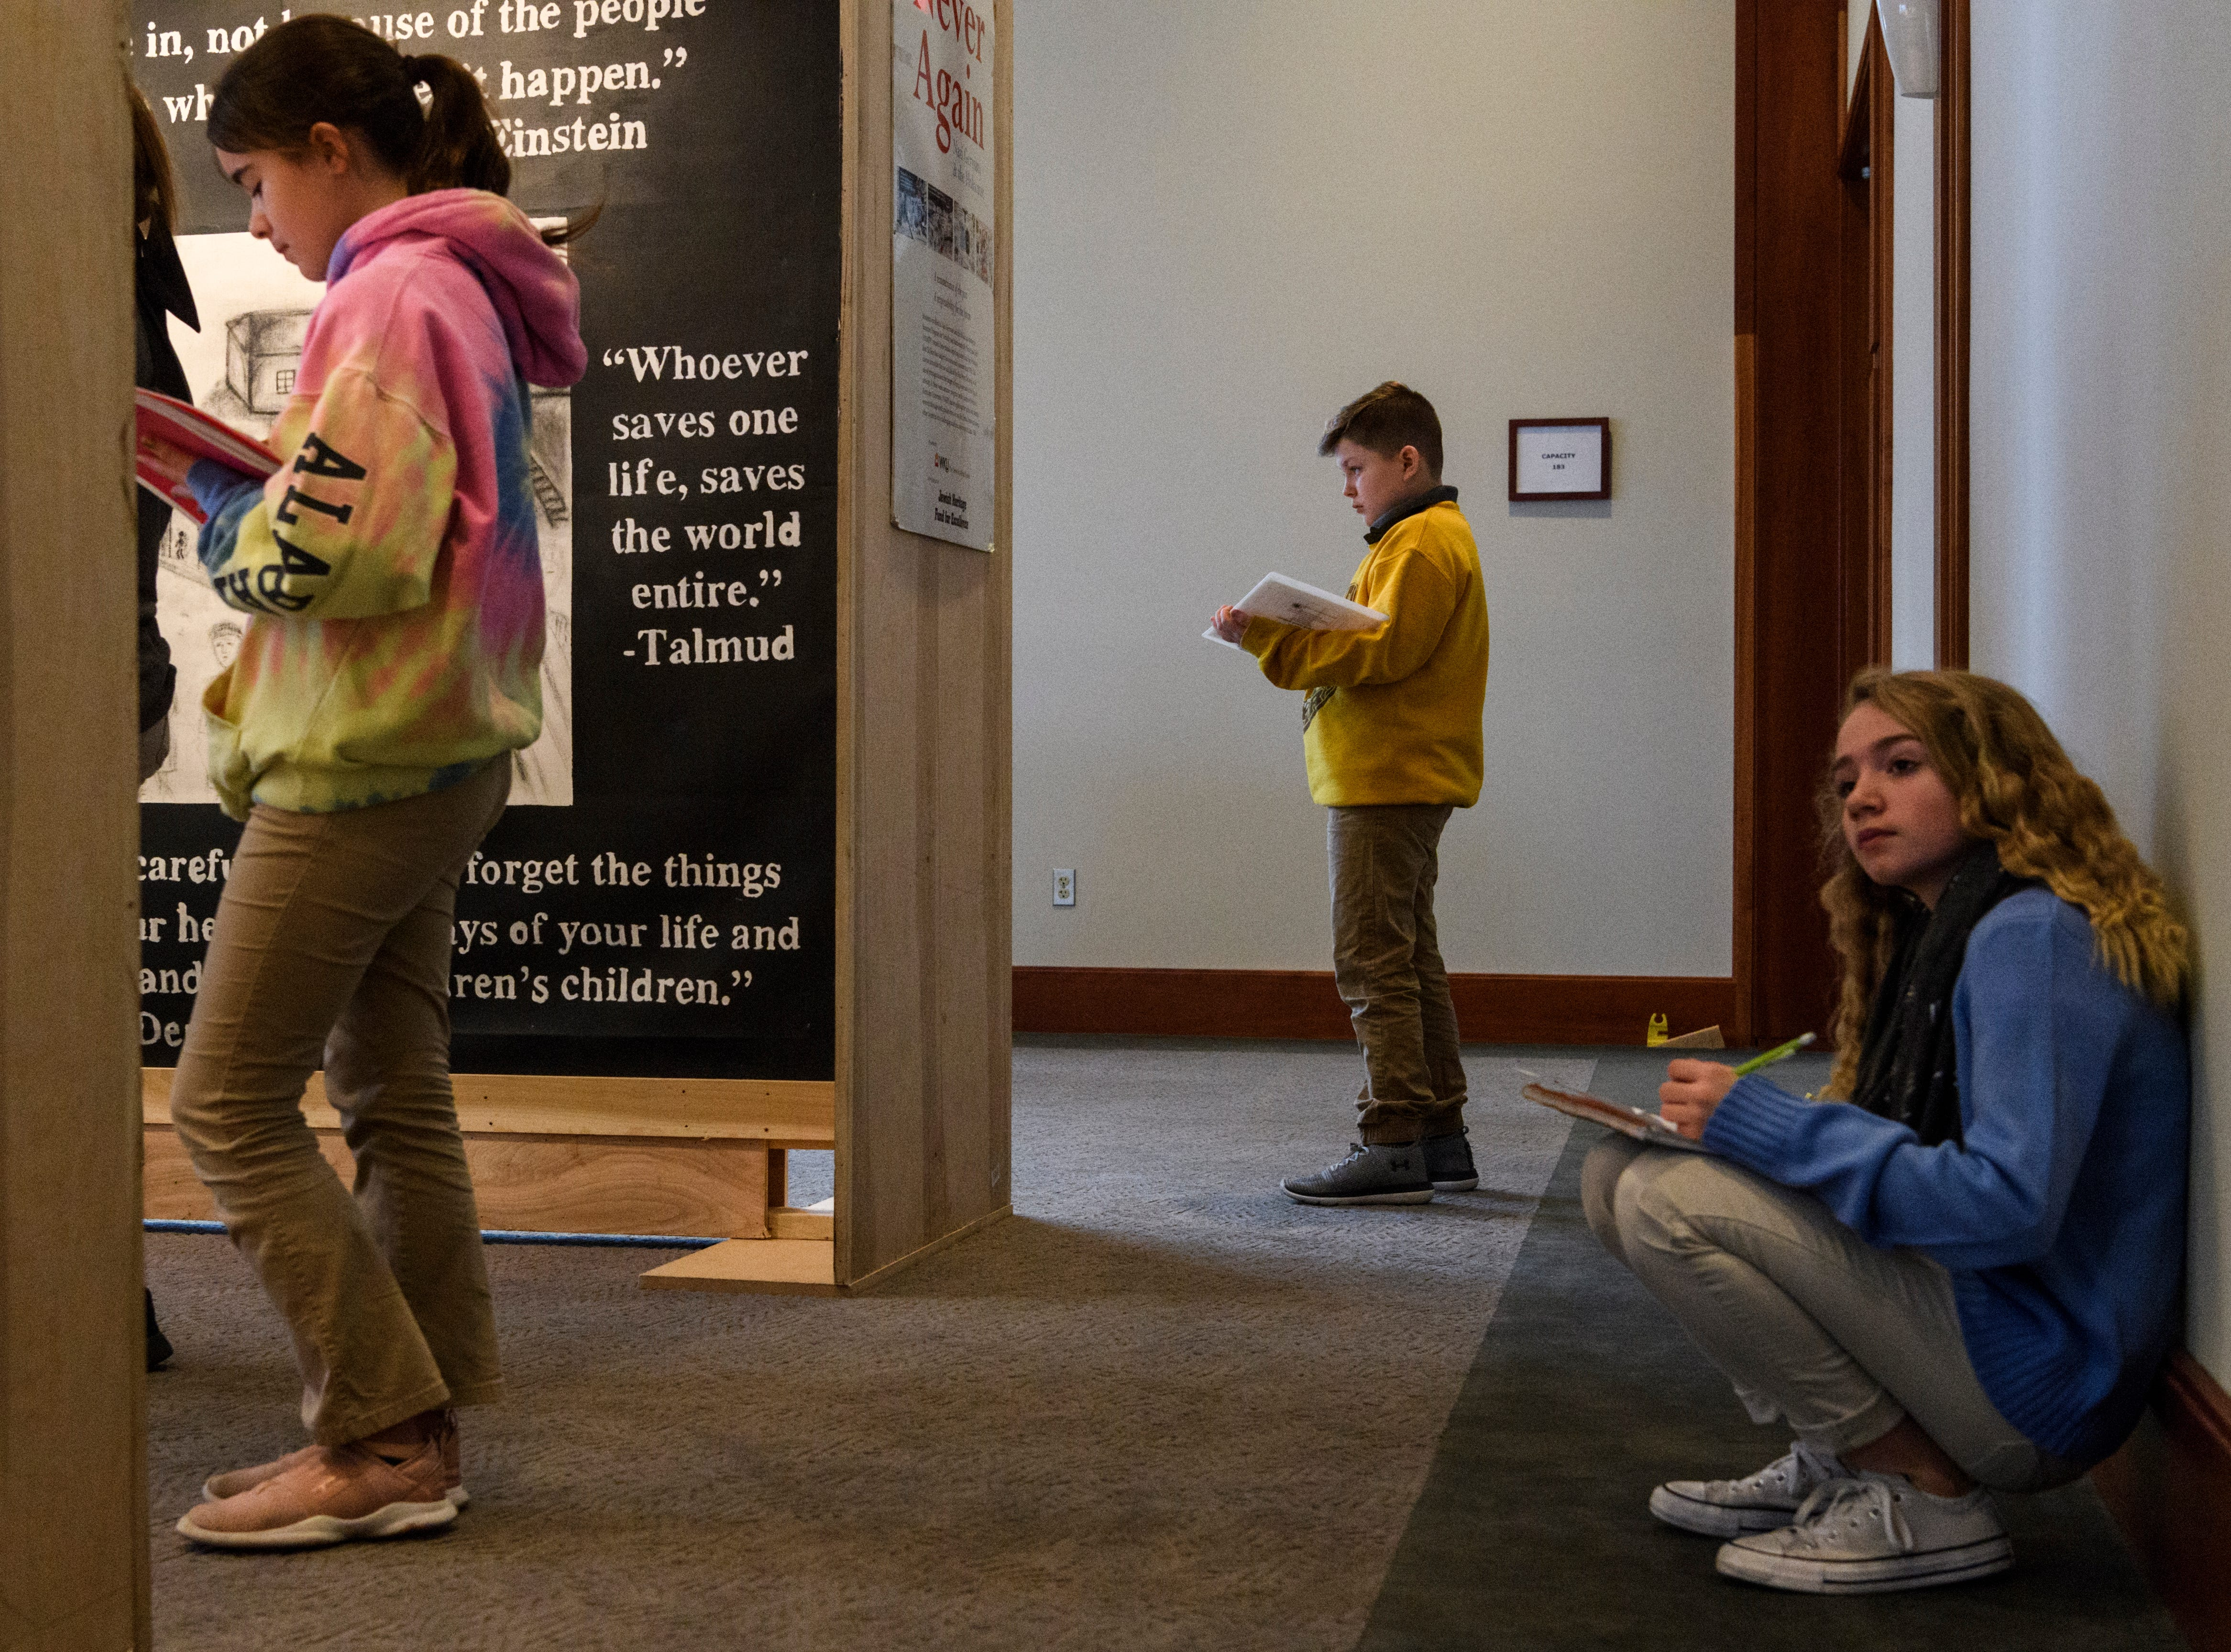 """Thompkins Middle School sixth-grade students Addison Sanders, from left, Gavin Podewils, Sydnee Robinson take notes as they view the """"A New Generation Remembers"""" Holocaust exhibit at Temple Adath B'nai Israel in Evansville, Ind., Wednesday, Feb. 6, 2019."""